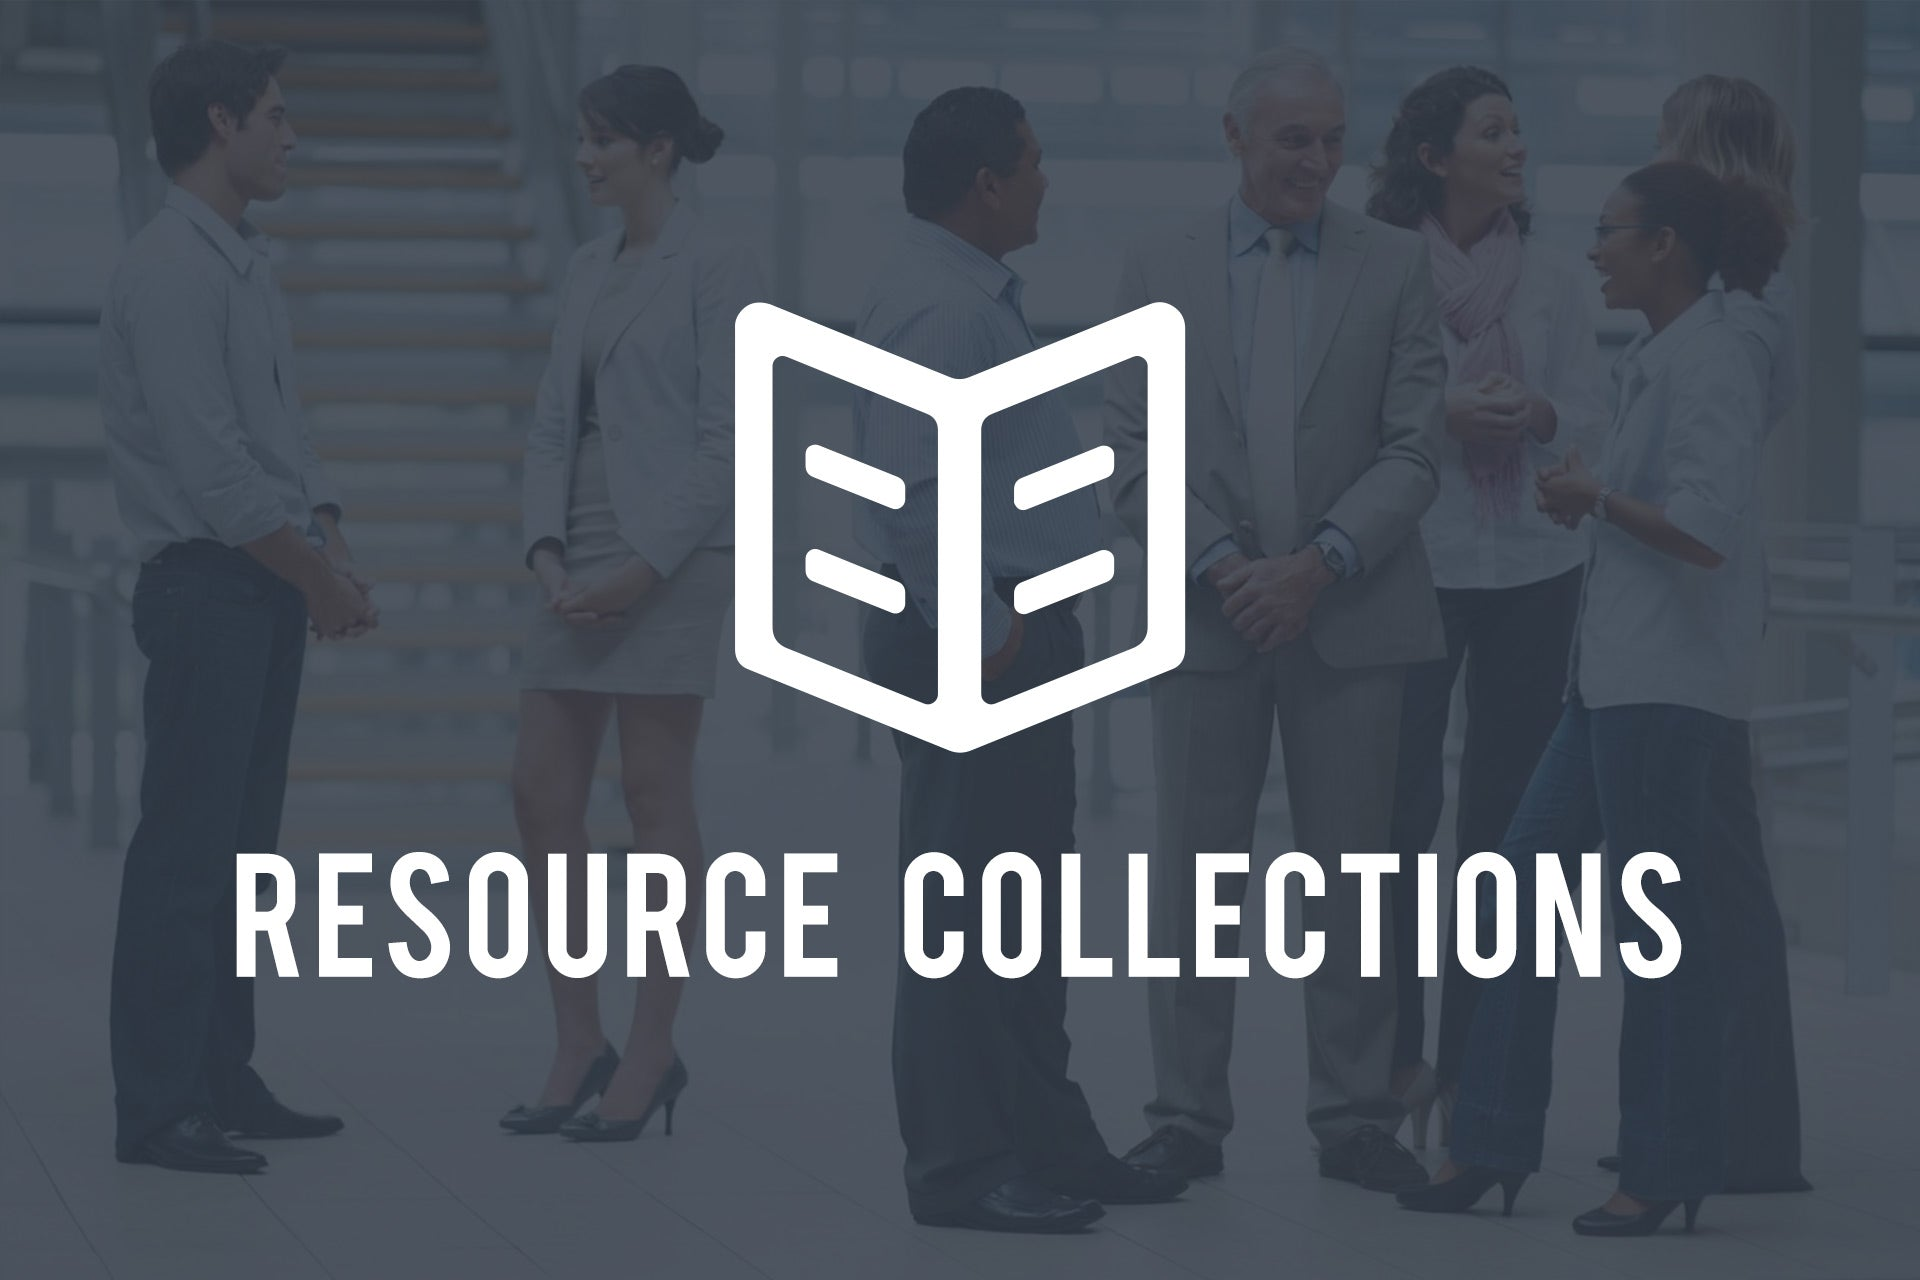 Resource Collections